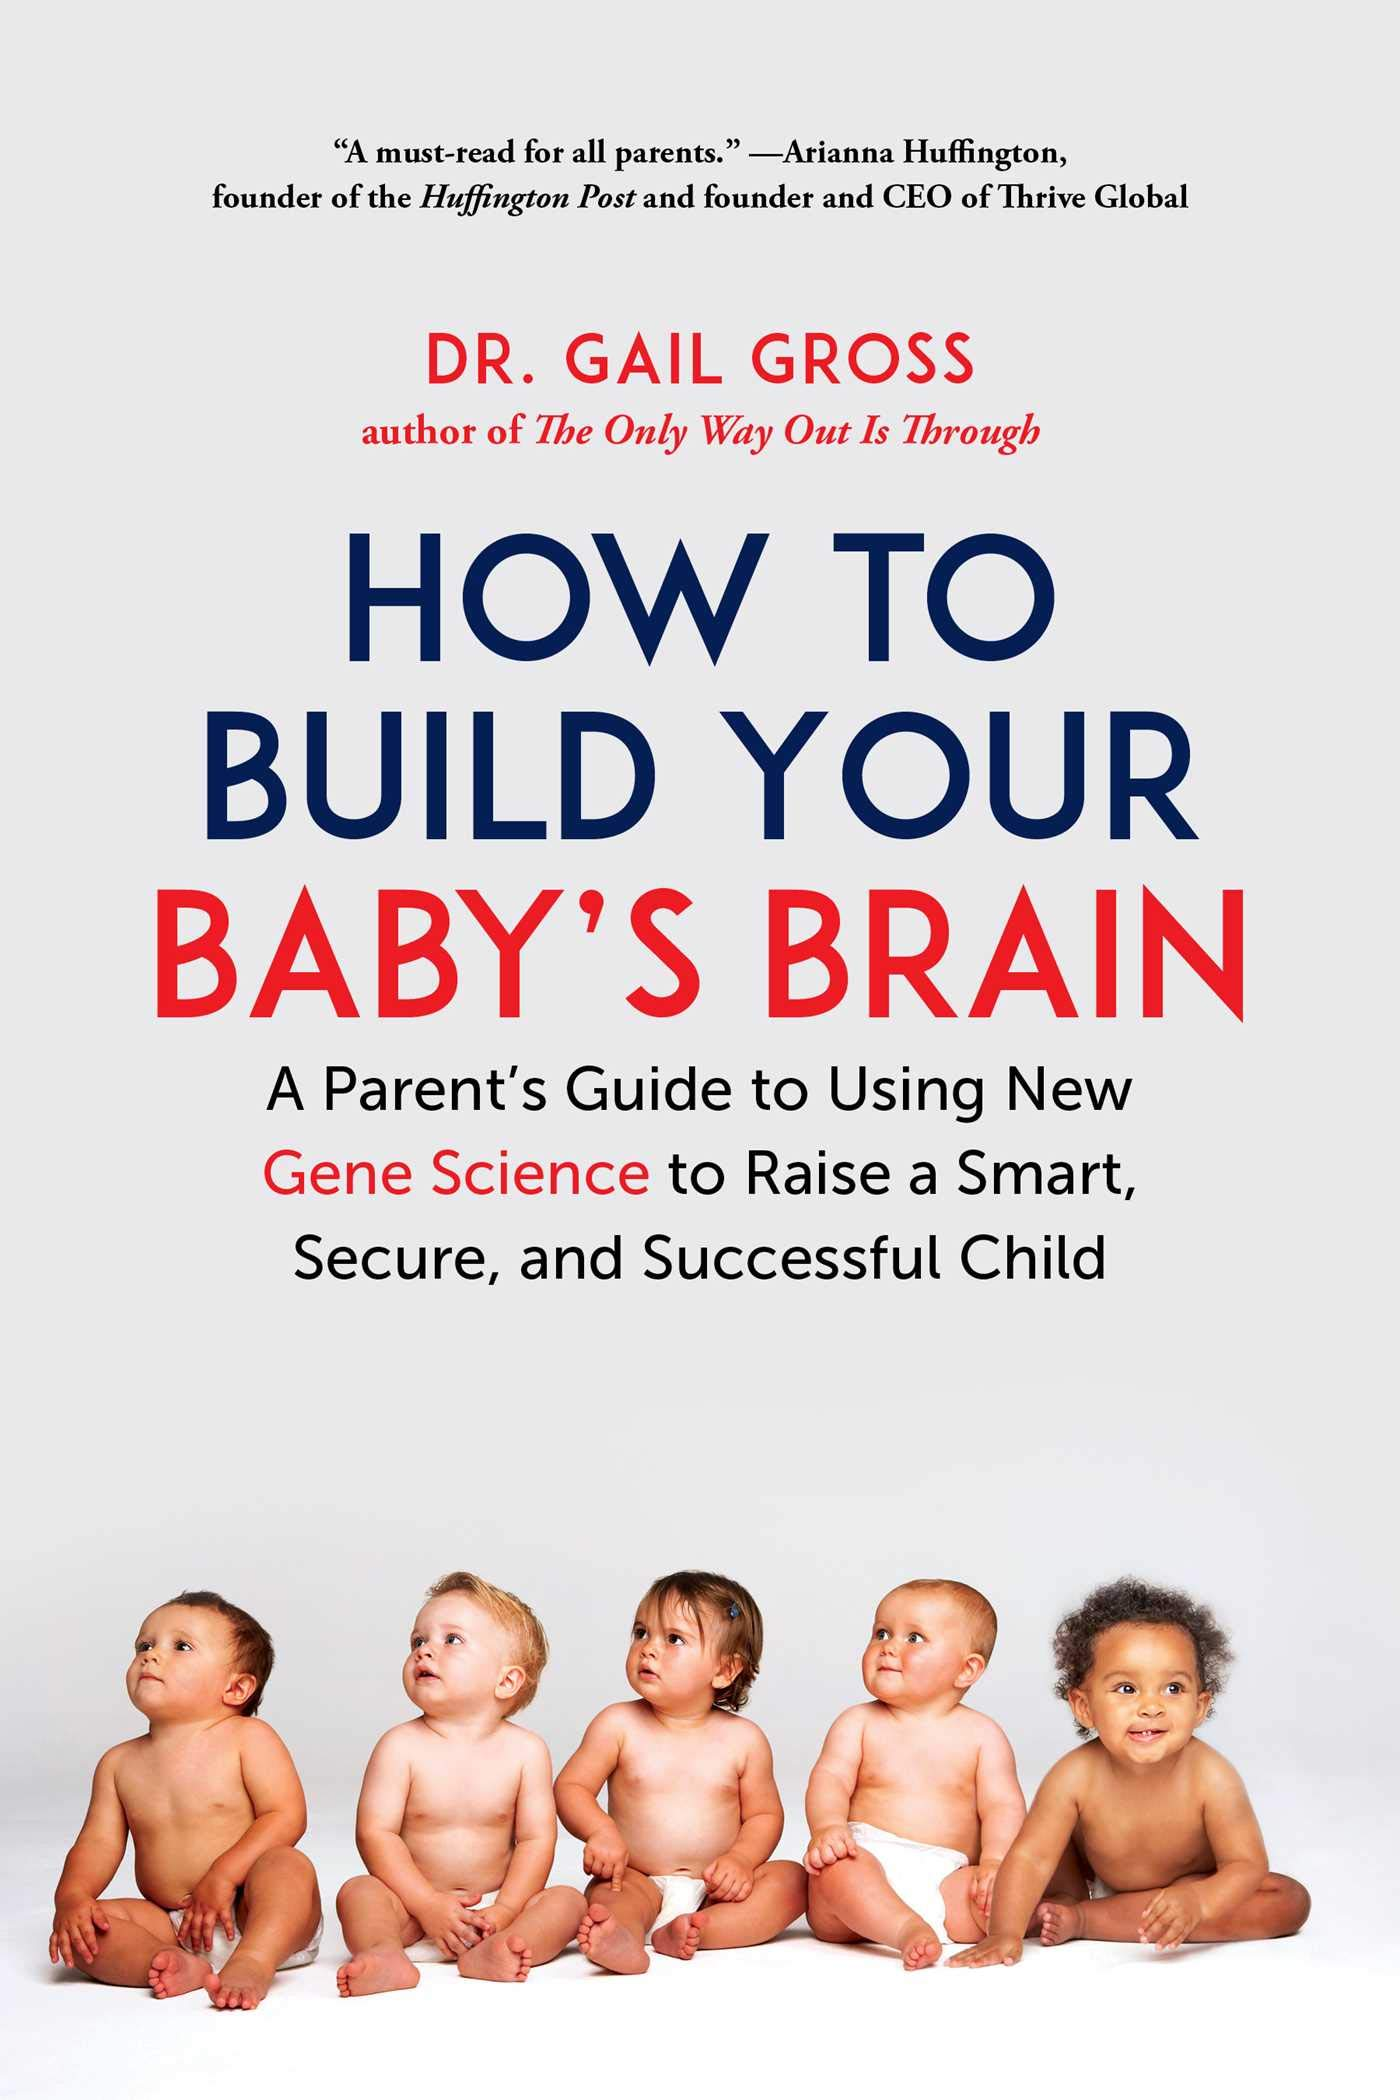 How to Build Your Baby's Brain: A Parent's Guide to Using New Gene Science to Raise a Smart, Secure, and Successful Child by Skyhorse